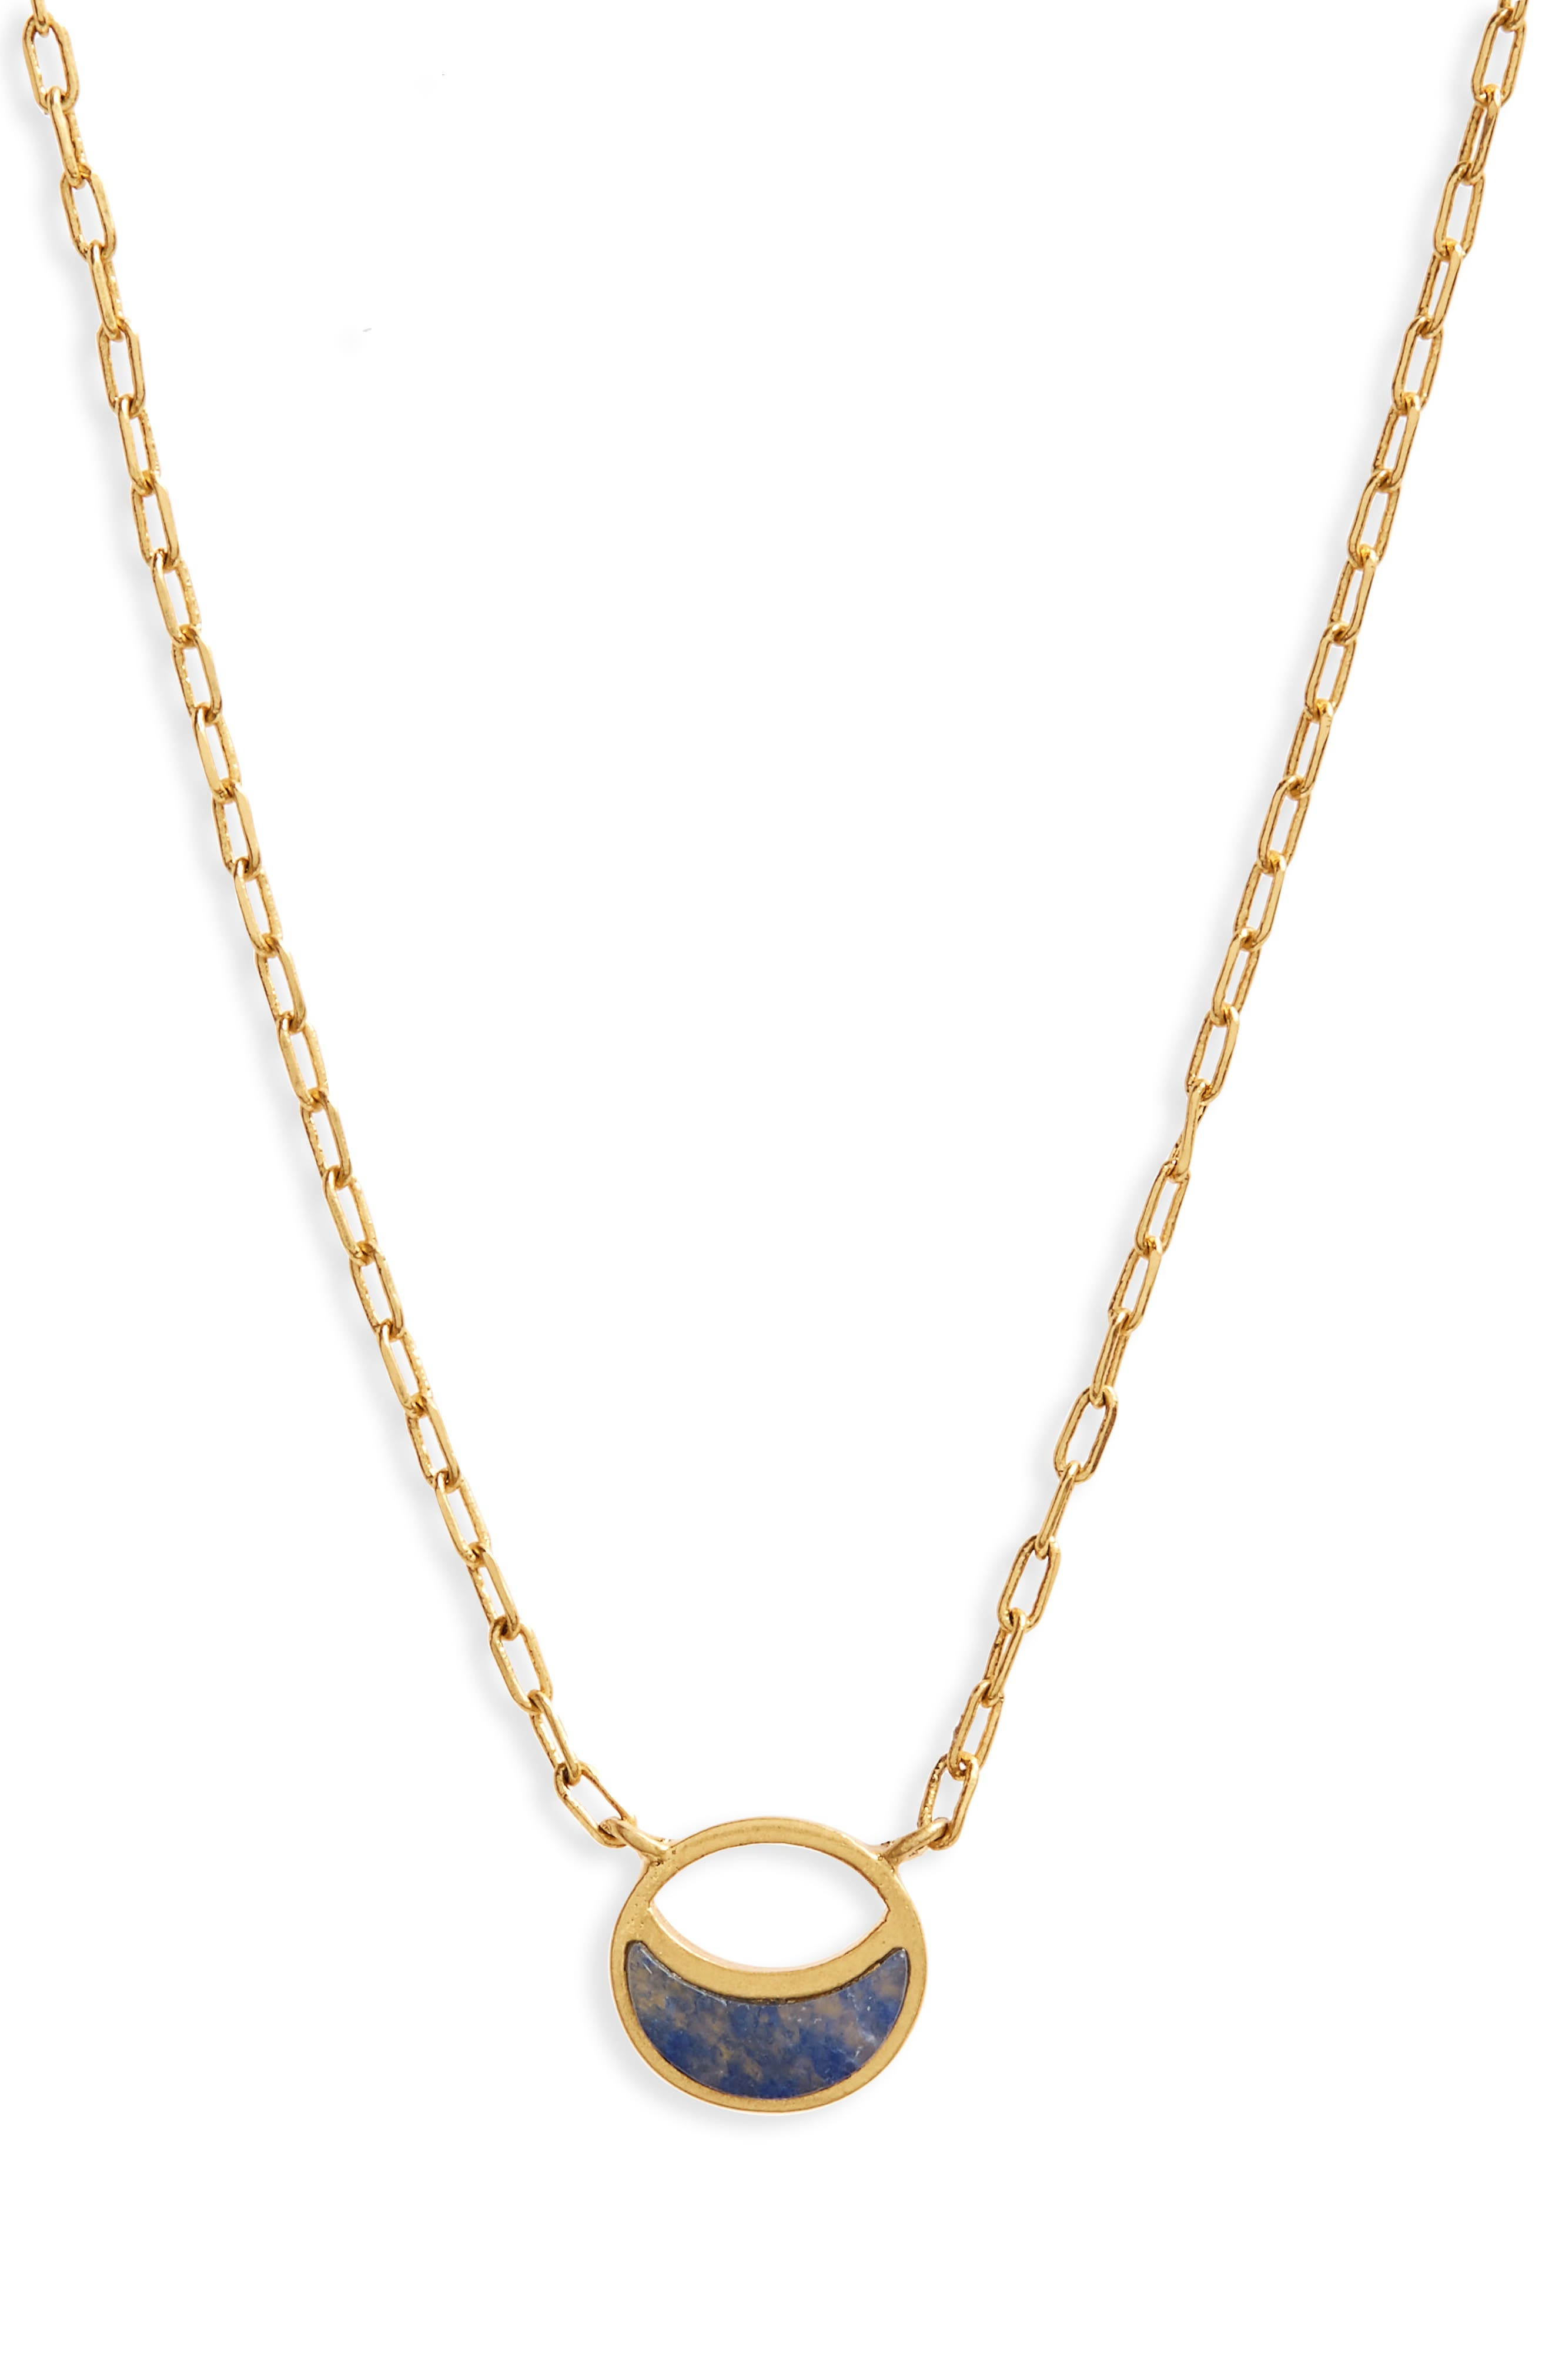 Main Image - Madewell Delicate Crescent Pendant Necklace